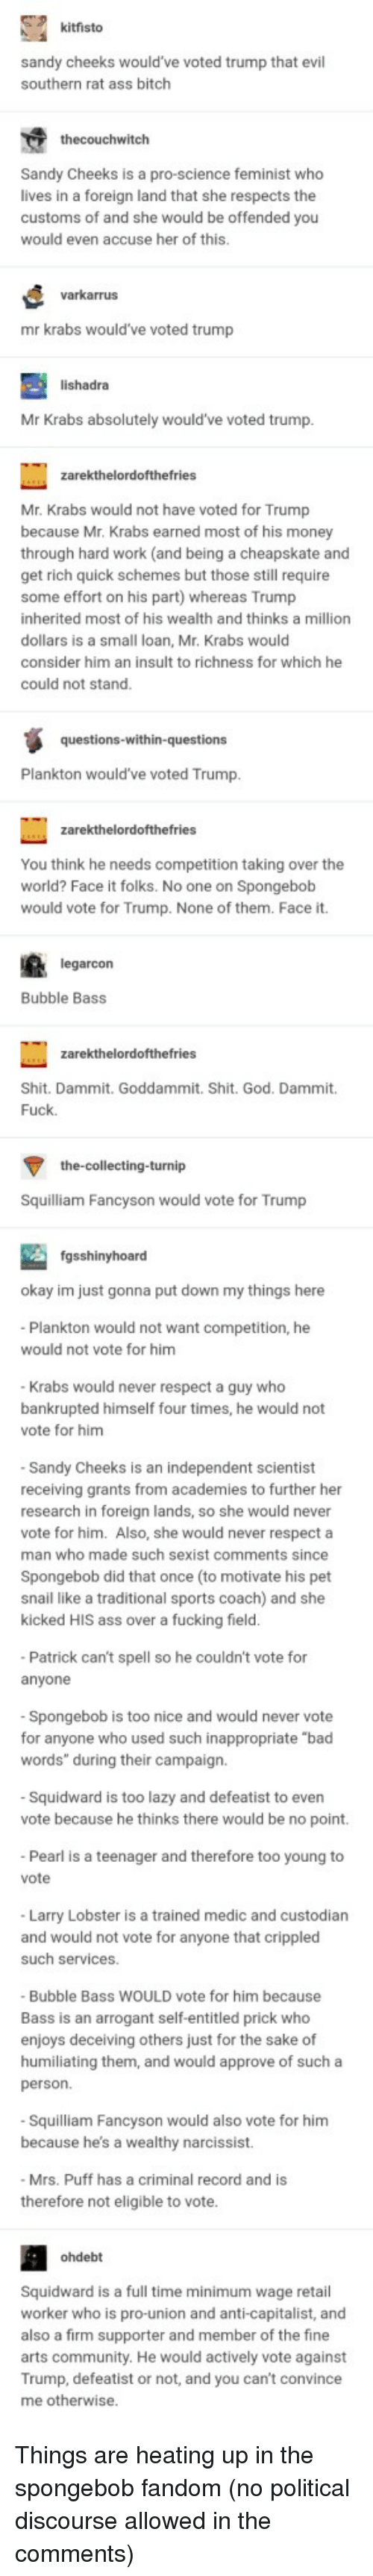 "Ass, Bad, and Bitch: kitfisto  sandy cheeks would've voted trump that evil  southern rat ass bitch  thecouchwitch  Sandy Cheeks is a pro-science feminist who  lives in a foreign land that she respects the  customs of and she would be offended you  would even accuse her of this.  varkarrus  mr krabs would've voted trump  lishadra  Mr Krabs absolutely would've voted trump  Mr. Krabs would not have voted for Trump  because Mr. Krabs earned most of his money  through hard work (and being a cheapskate and  get rich quick schemes but those still require  some effort on his part) whereas Trump  inherited most of his wealth and thinks a million  dollars is a small loan, Mr. Krabs would  consider him an insult to richness for which he  could not stand  Plankton would've voted Trump  You think he needs competition taking over the  world? Face it folks. No one on Spongebob  would vote for Trump. None of them. Face it.  arcon  Bubble Bass  Shit. Dammit. Goddammit. Shit. God. Dammit.  Fuck  the-collecting-turnip  Squilliam Fancyson would vote for Trump  fgsshinyhoard  okay im just gonna put down my things here  Plankton would not want competition, he  would not vote for him  Krabs would never respect a guy who  bankrupted himself four times, he would not  vote for him  Sandy Cheeks is an independent scientist  receiving grants from academies to further her  research in foreign lands, so she would never  vote for him. Also, she would never respect a  man who made such sexist comments since  Spongebob did that once (to motivate his pet  snail like a traditional sports coach) and she  kicked HIS ass over a fucking field  Patrick can't spell so he couldn't vote for  anyone  Spongebob is too nice and would never vote  for anyone who used such inappropriate ""bad  words"" during their campaign.  Squidward is too lazy and defeatist to even  vote because he thinks there would be no point.  Pearl is a teenager and therefore too young to  vote  Larry Lobster is a trained medic and custodian  and would not vote for anyone that crippled  such services  Bubble Bass WOULD vote for him because  Bass is an arrogant self-entitled prick who  enjoys deceiving others just for the sake of  humiliating them, and would approve of such a  person.  Squilliam Fancyson would also vote for him  because he's a wealthy narcissist.  Mrs. Puff has a criminal record and is  therefore not eligible to vote  ohdebt  Squidward is a full time minimum wage retail  worker who is pro-union and anti-capitalist, and  also a firm supporter and member of the fine  arts community. He would actively vote against  Trump, defeatist or not, and you can't convince  me otherwise Things are heating up in the spongebob fandom (no political discourse allowed in the comments)"